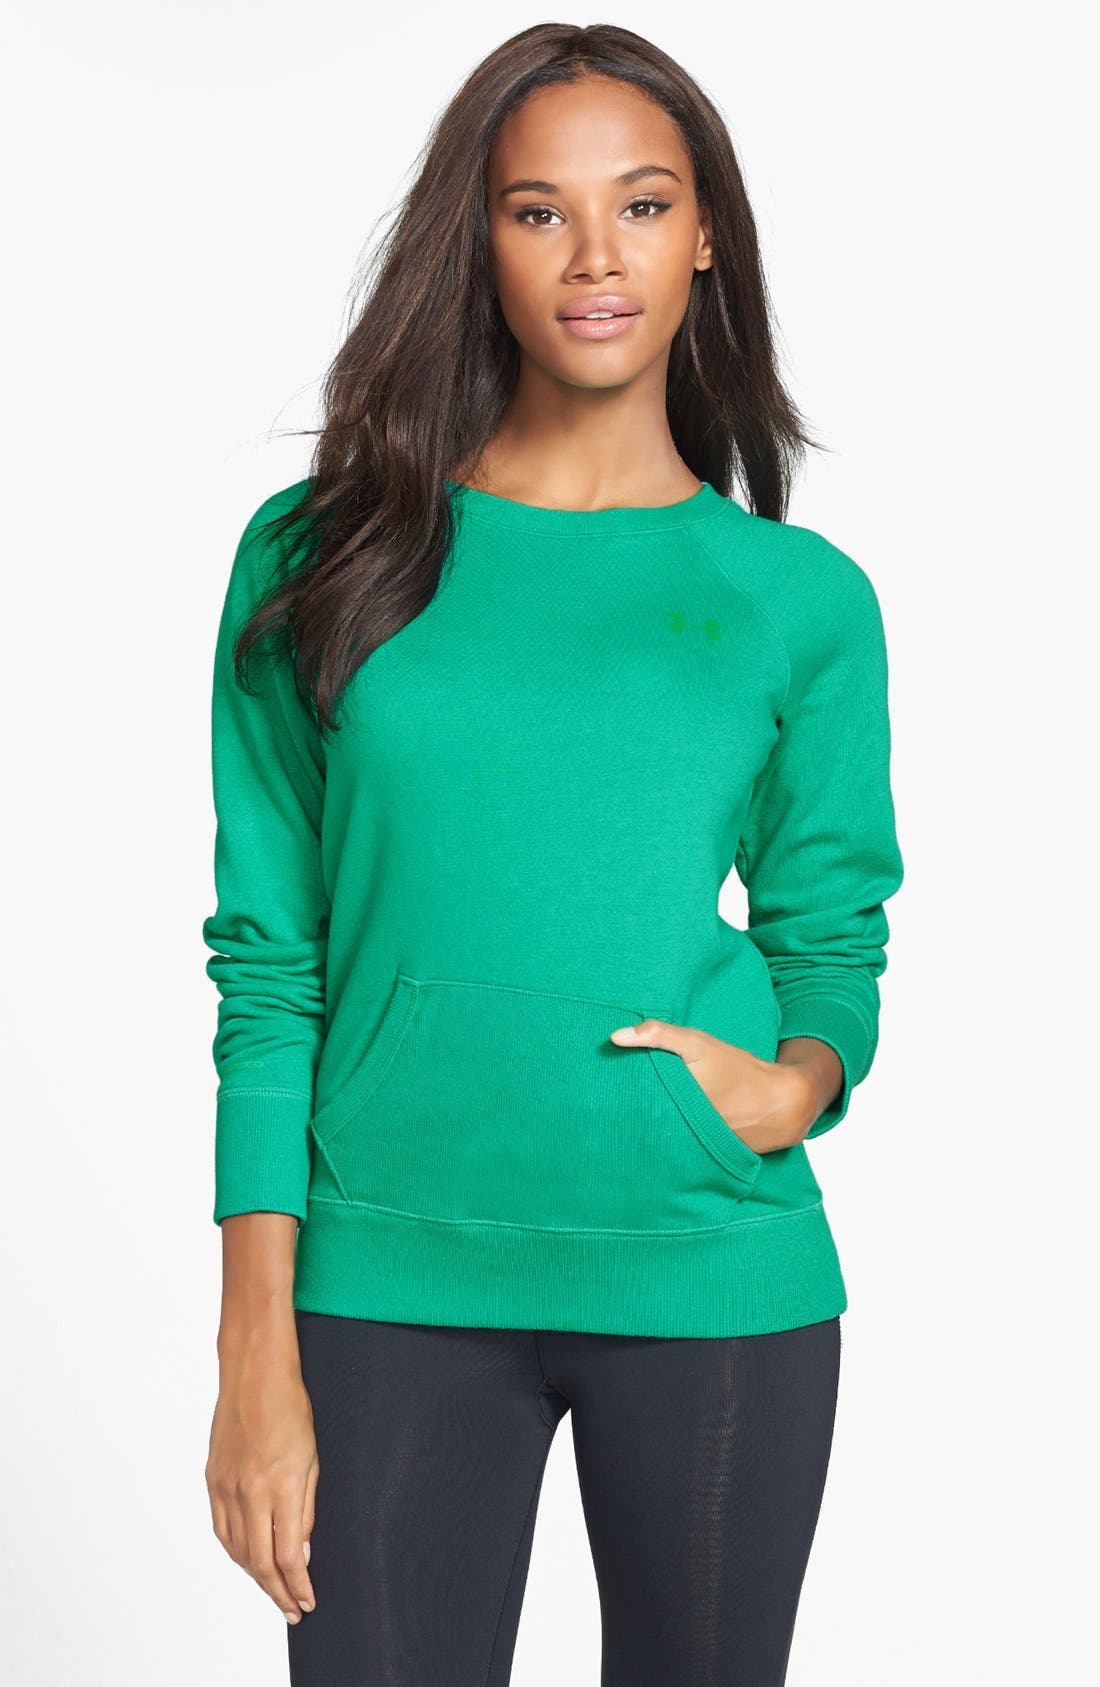 Alternate Image 1 Selected - Under Armour 'Legacy' Charged Cotton® Crewneck Top